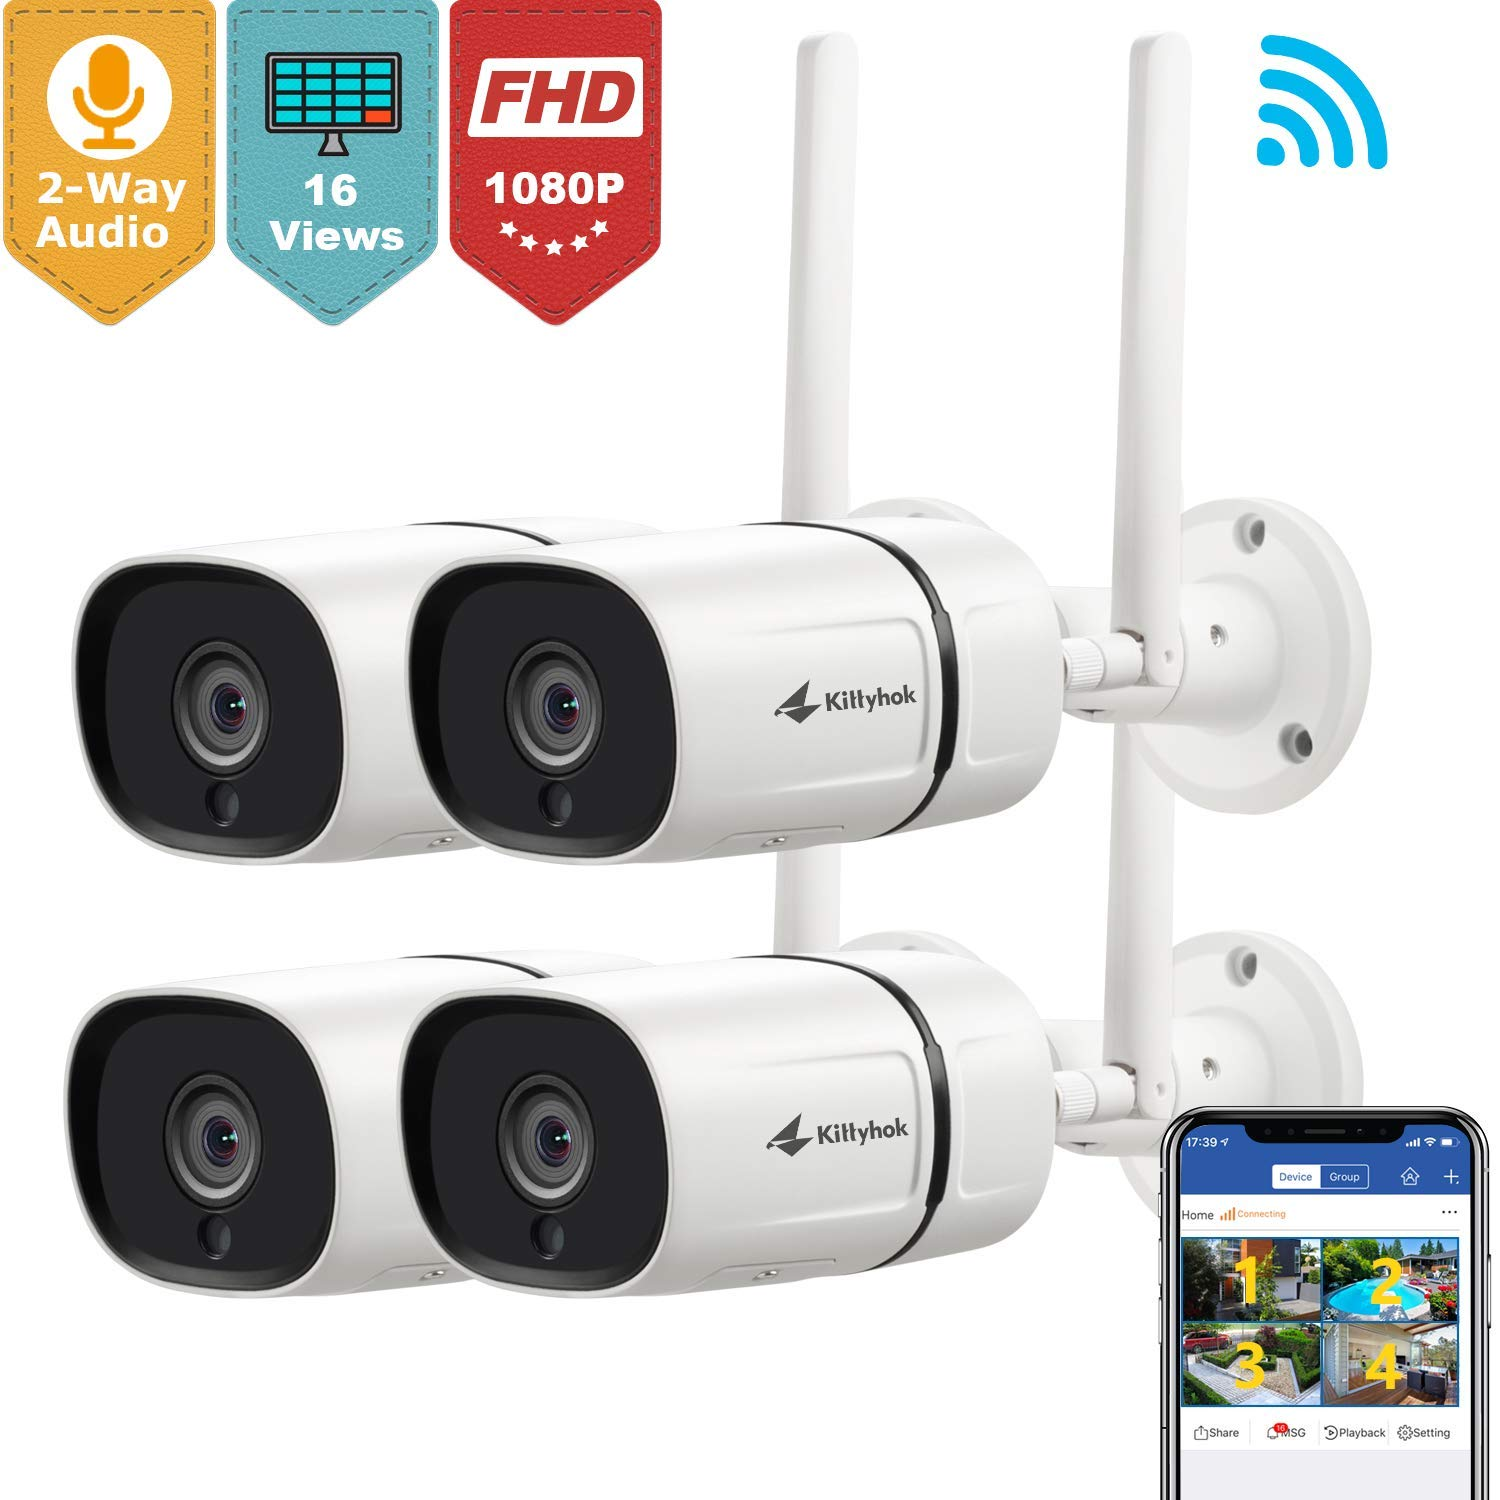 Kittyhok Outdoor Wireless Security Camera, 1080P Full HD 2.4GHz WiFi IP Bullet Cameras with Two-Way Audio Motion Detection Night Vision Ip65 Weatherproof Remote Surveillance Monitor 4-Pack